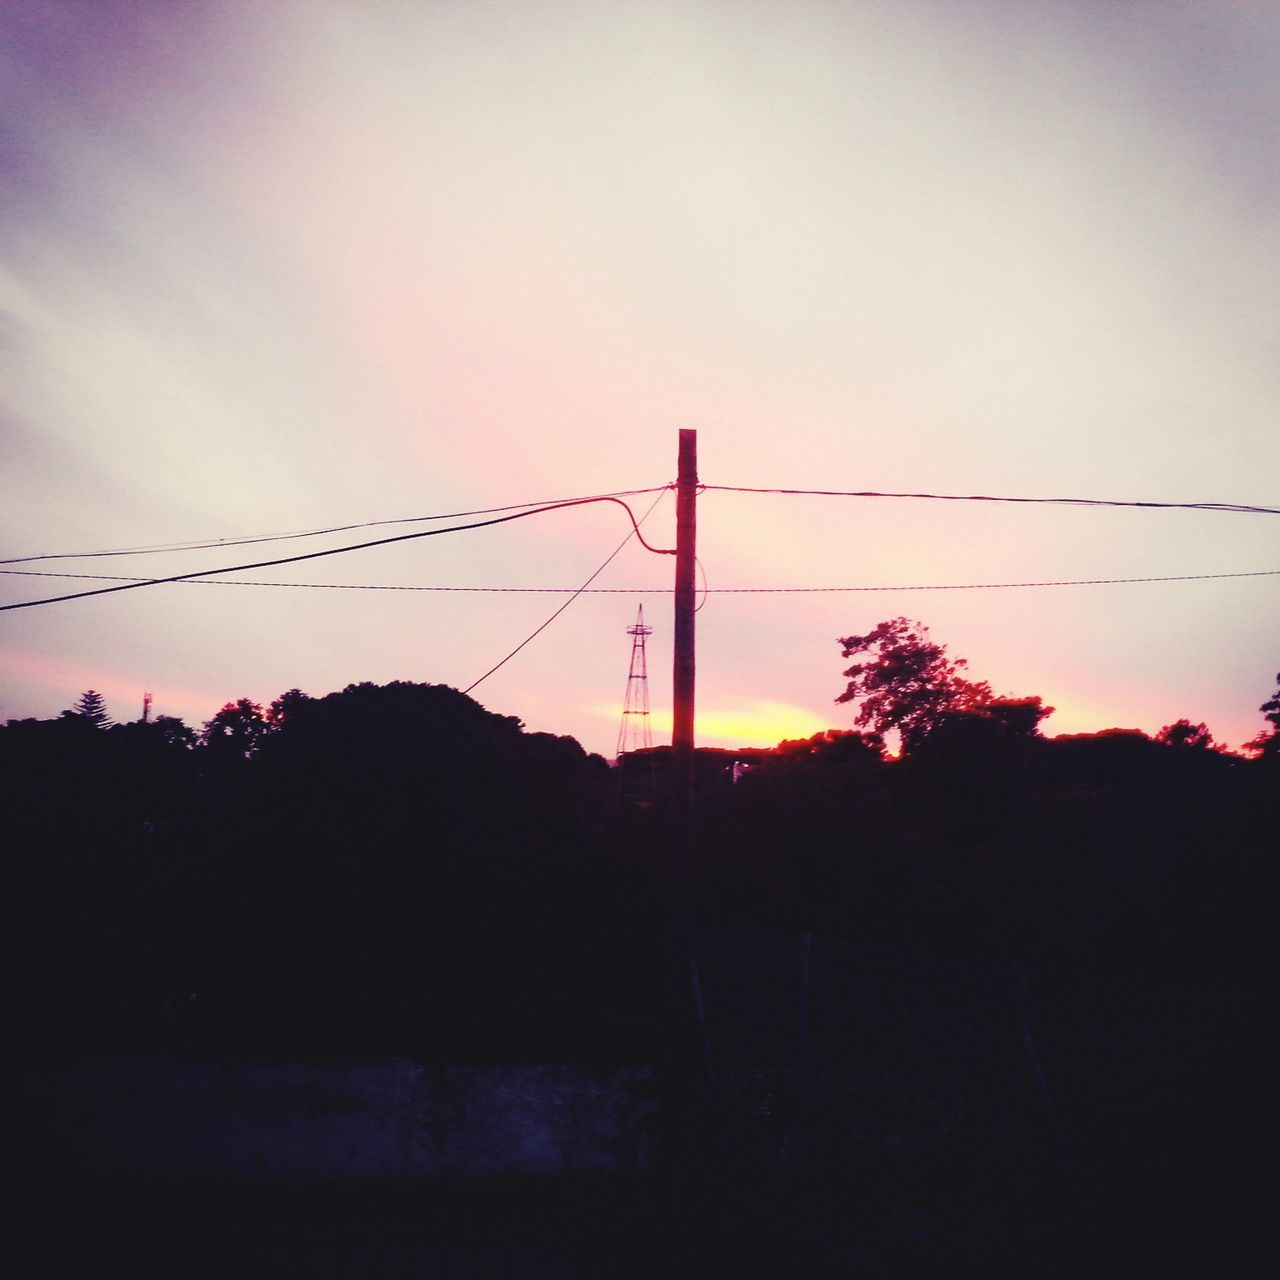 sunset, cable, silhouette, connection, electricity, tree, nature, power line, no people, sky, electricity pylon, power supply, outdoors, beauty in nature, fuel and power generation, technology, landscape, growth, day